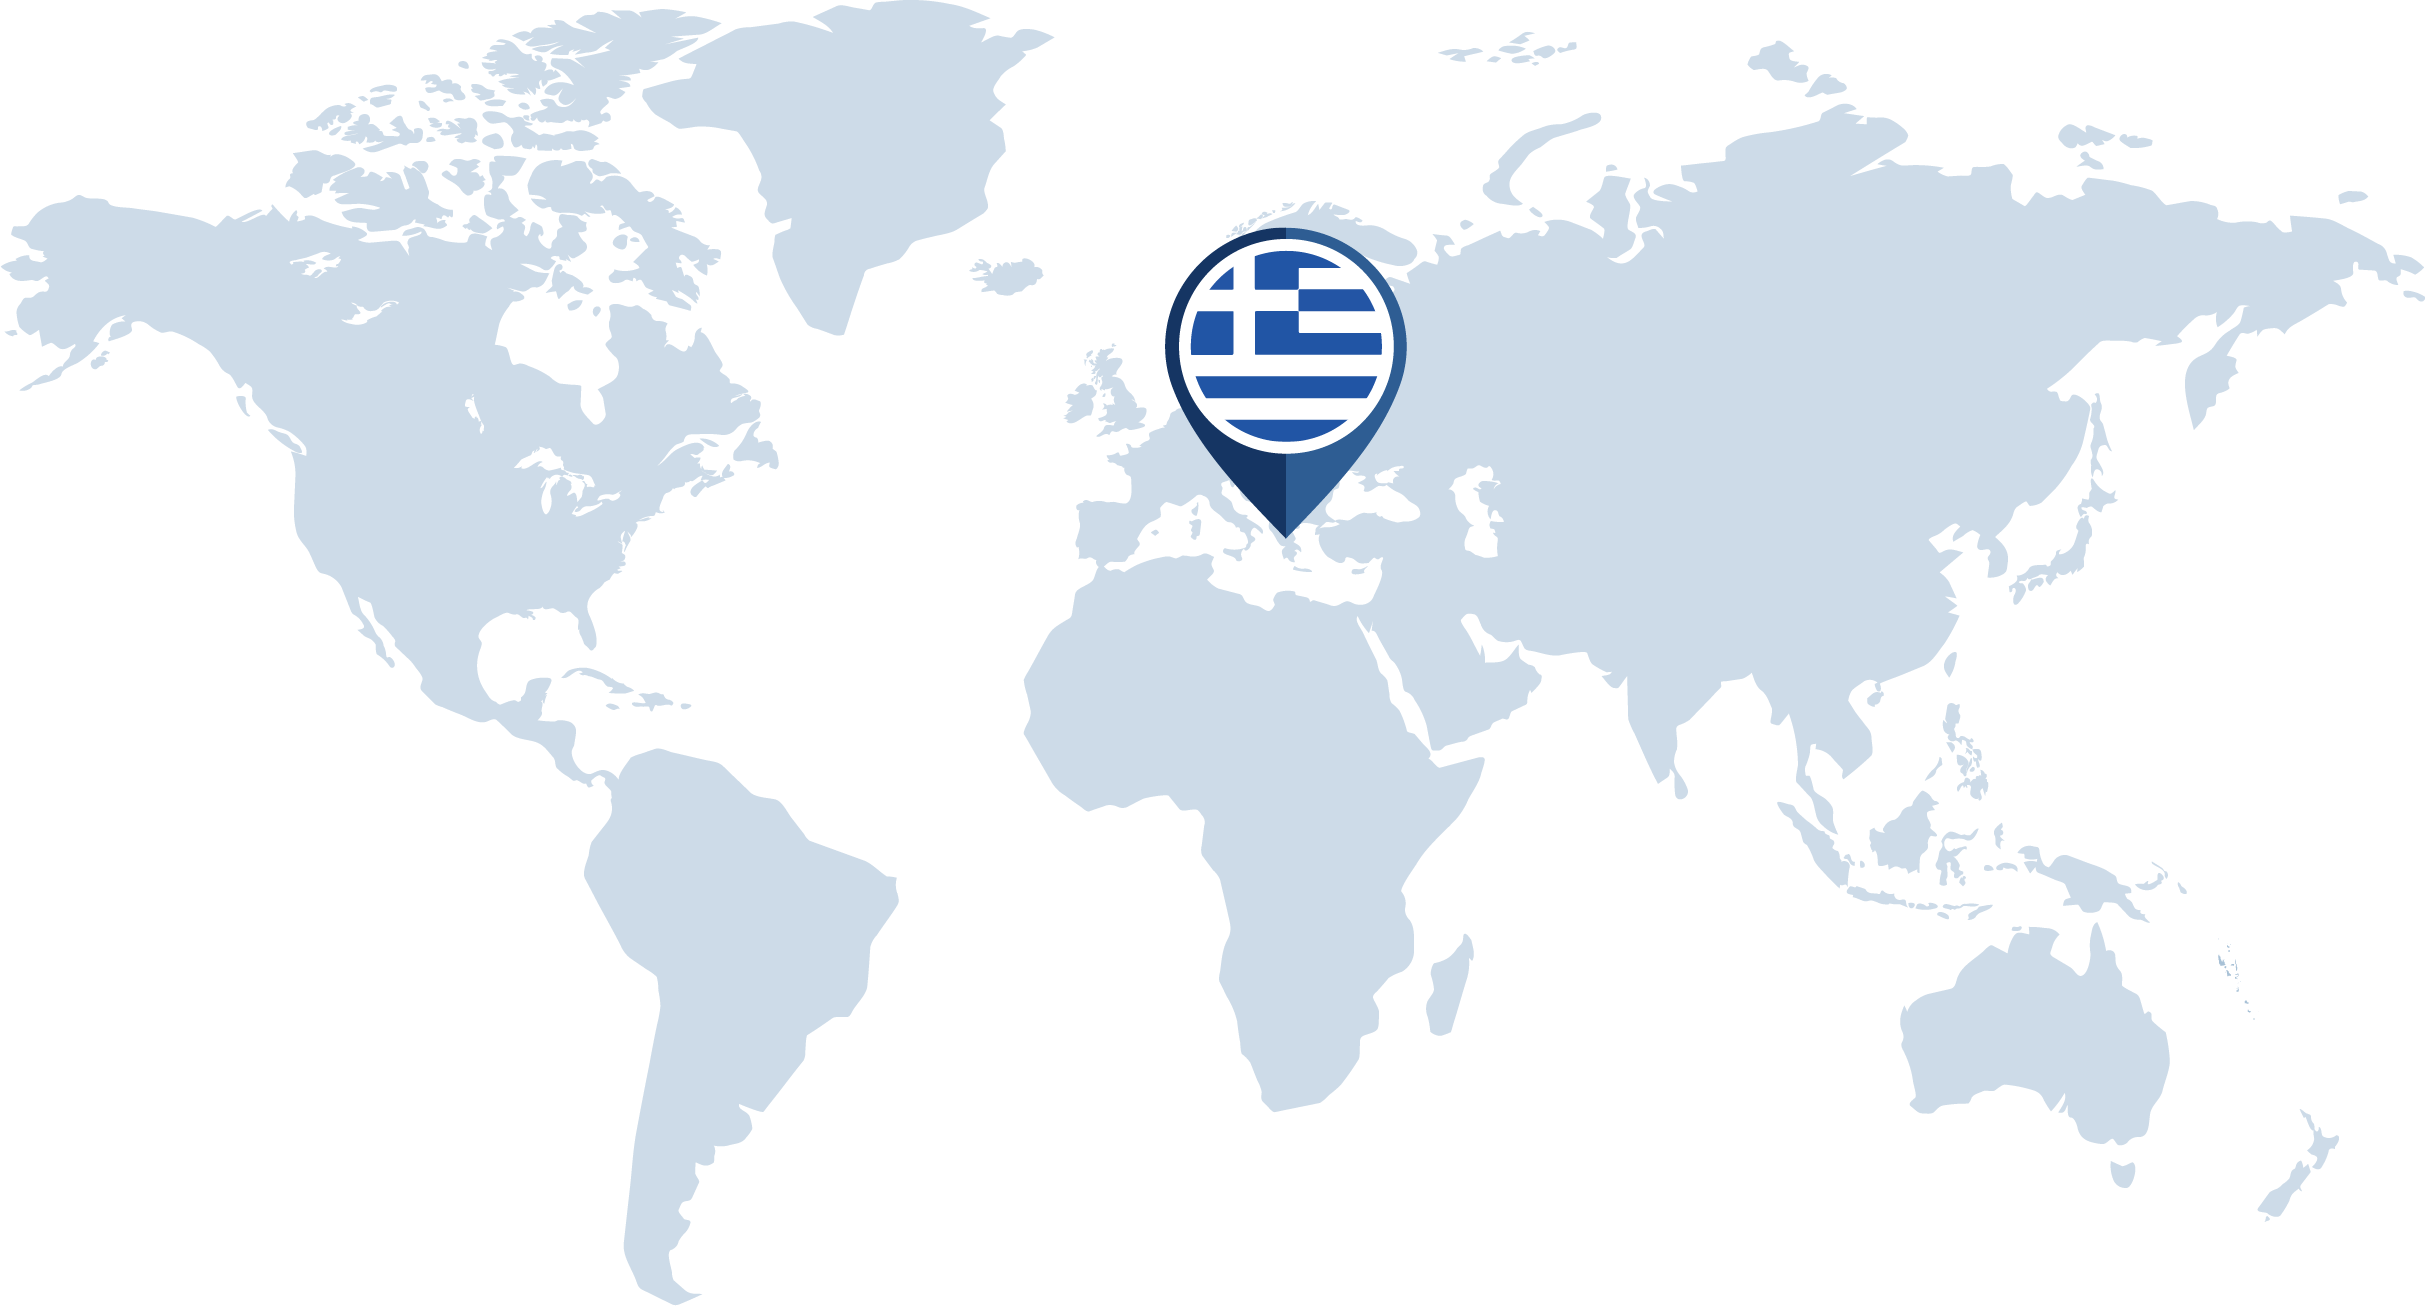 https://www.bluemina.com/wp-content/uploads/2020/02/Greece-map-and-flag-1.png